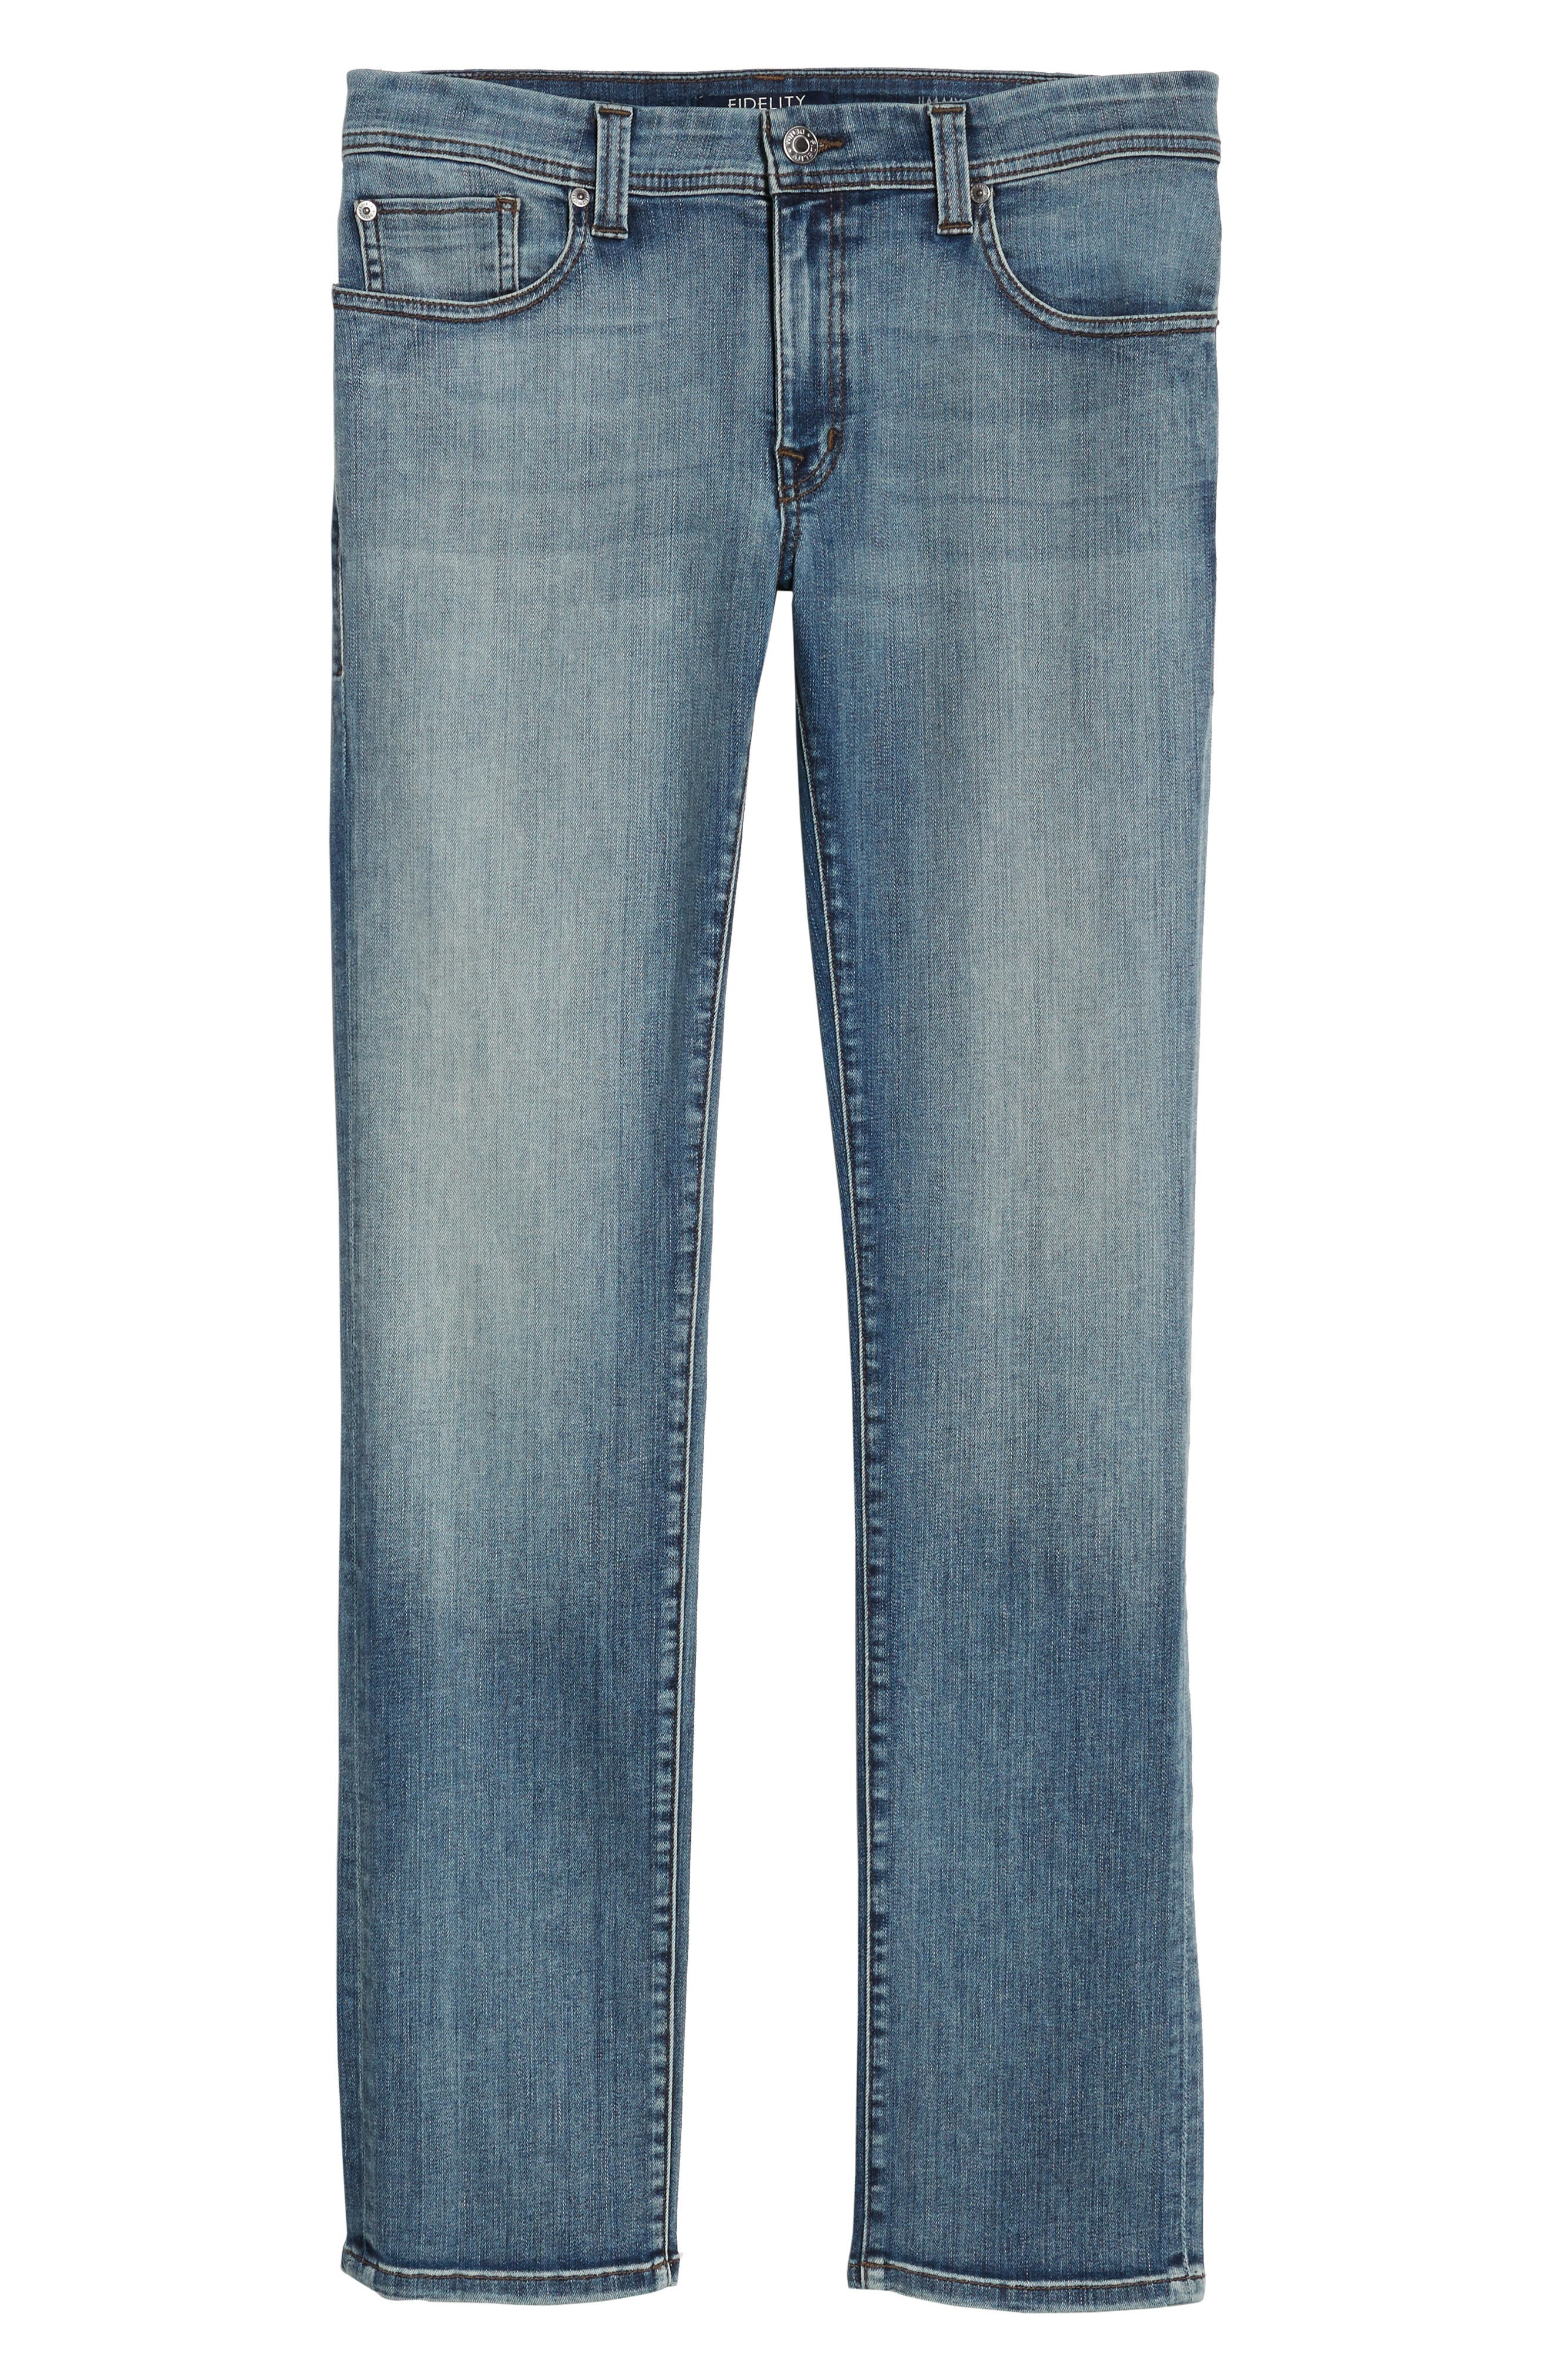 Jimmy Slim Fit Jeans,                             Alternate thumbnail 6, color,                             400